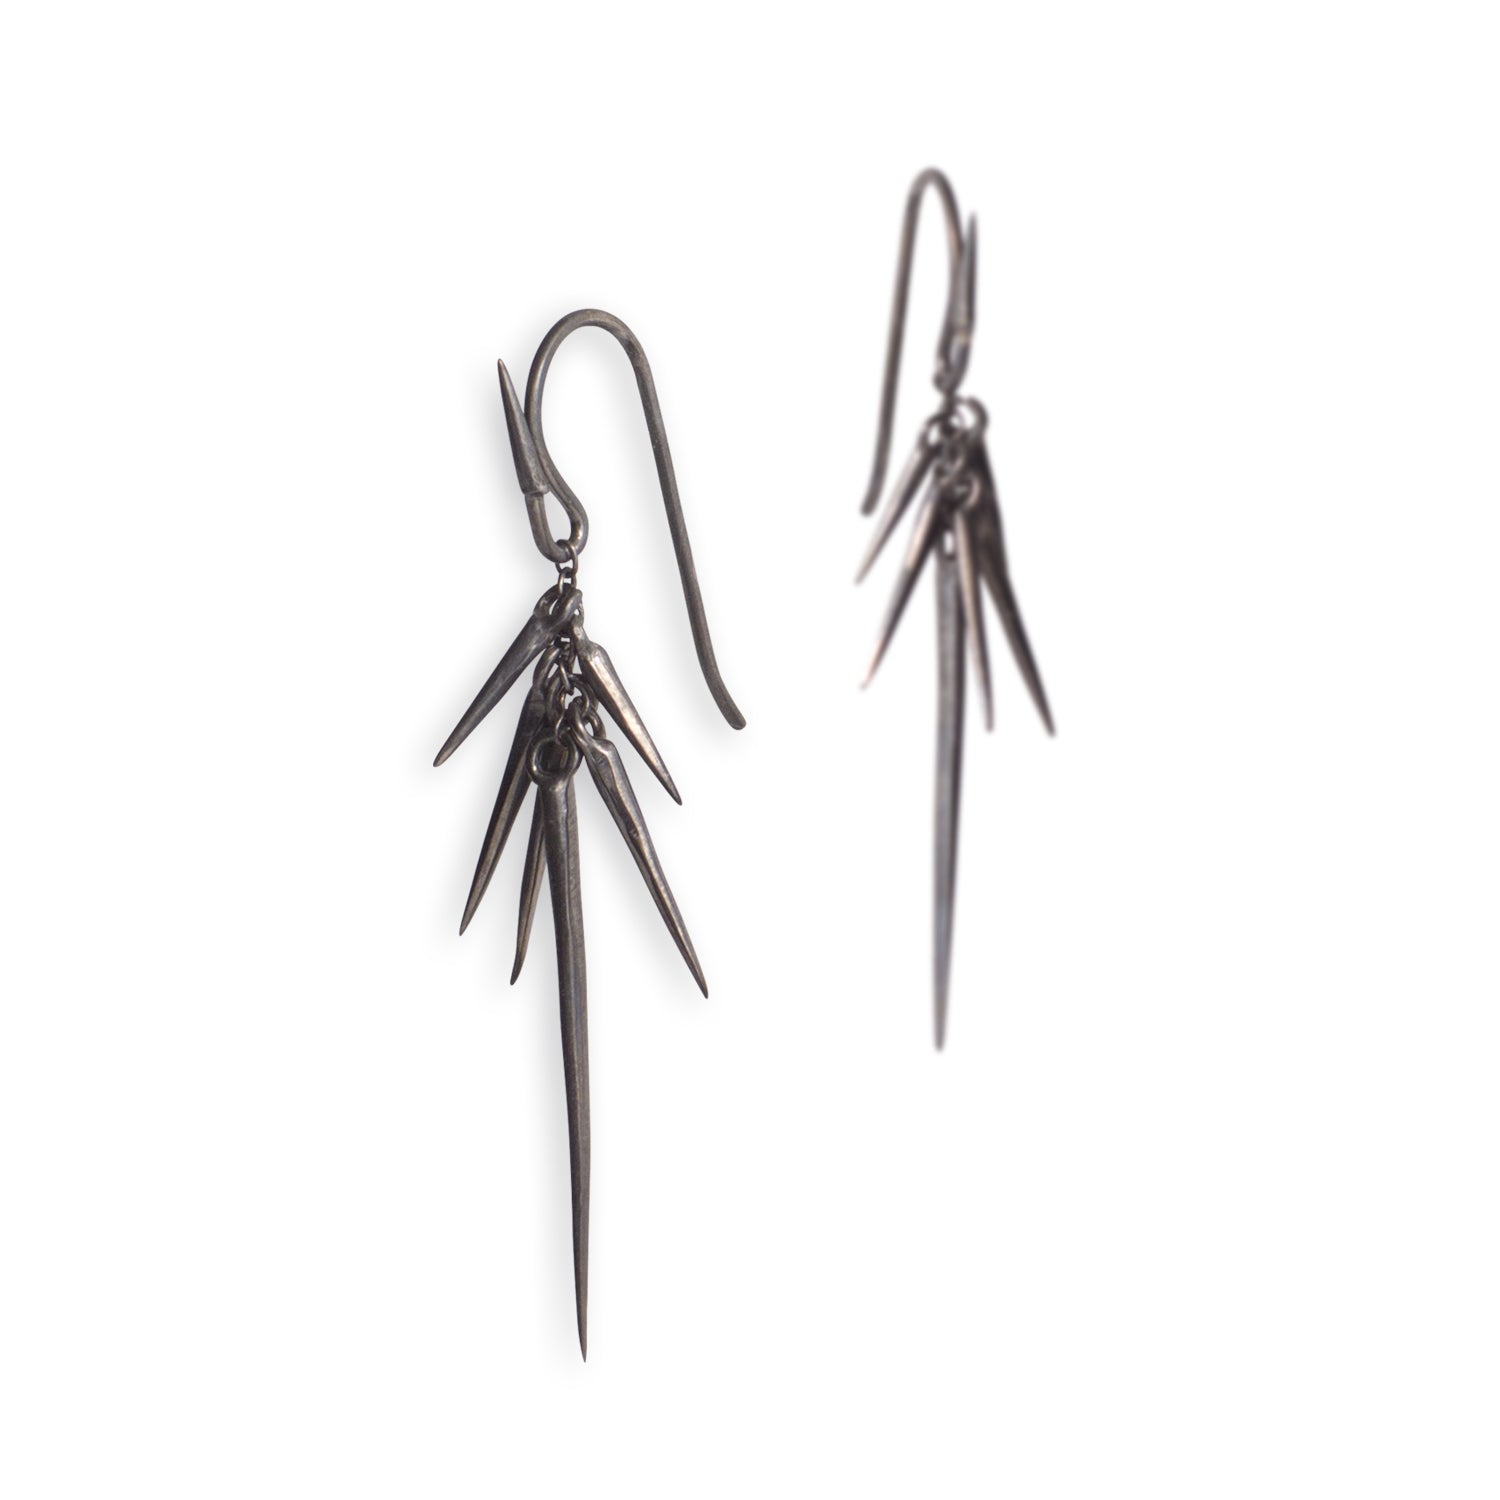 sterling silver plated in black rhodium - large small point cluster earrings